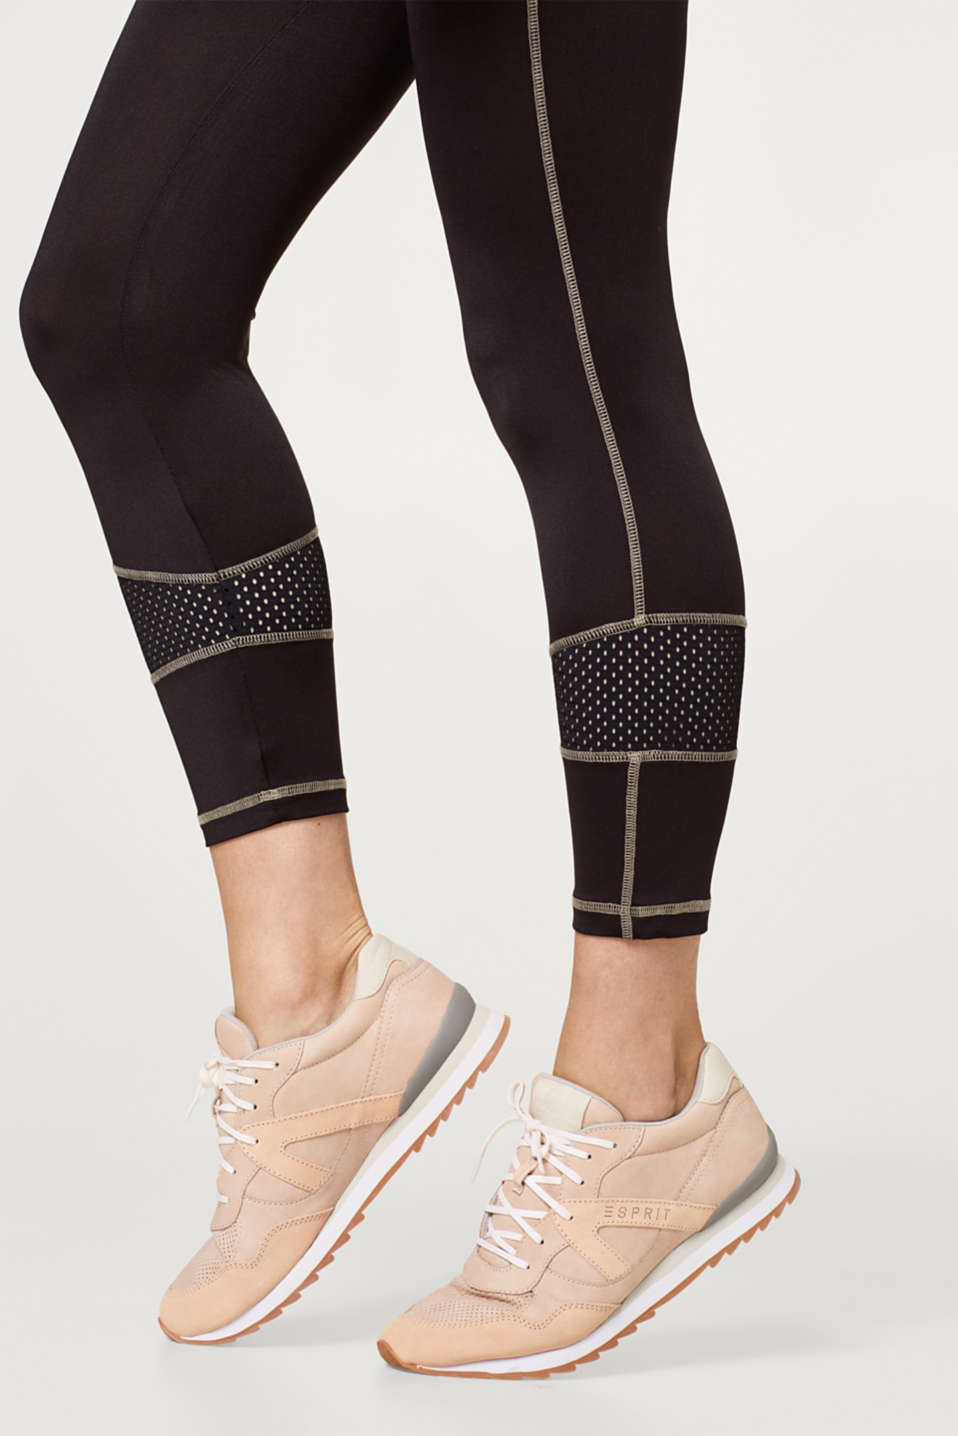 High-performance leggings with mesh details, LCBLACK, detail image number 2